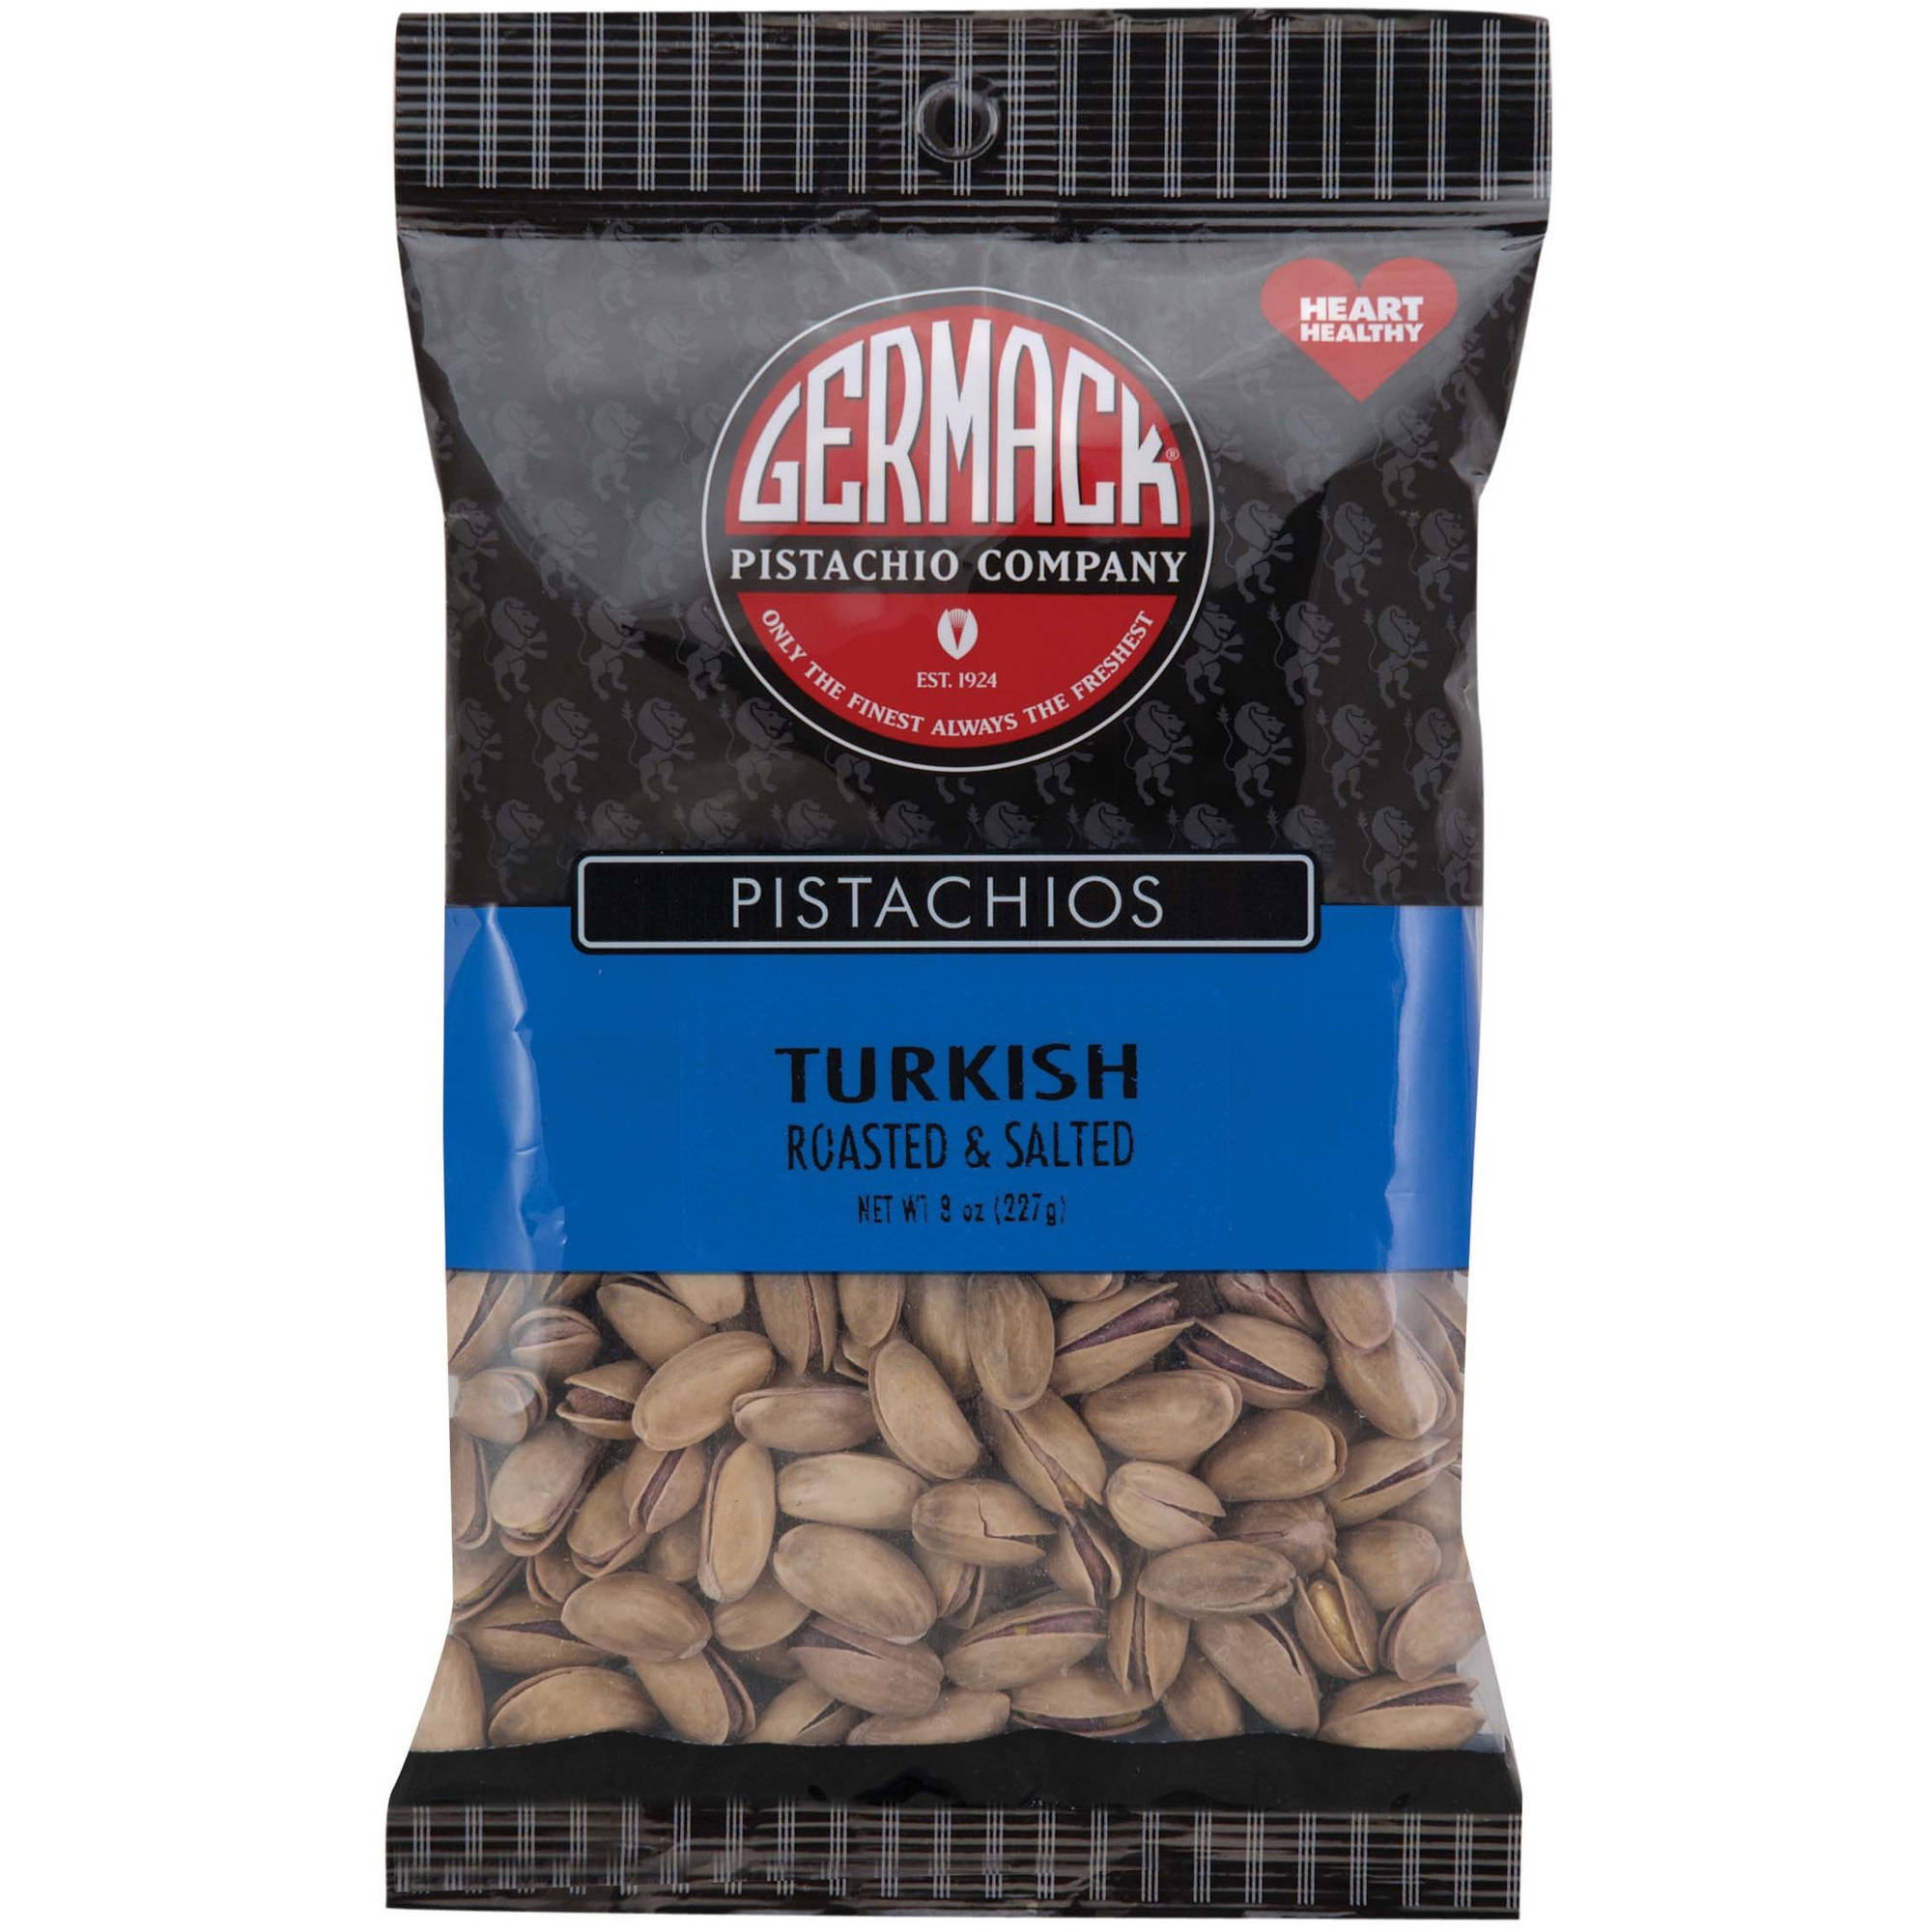 Germack Pistachio Company Turkish Roasted & Salted Pistachios, 8 oz by GERMACK